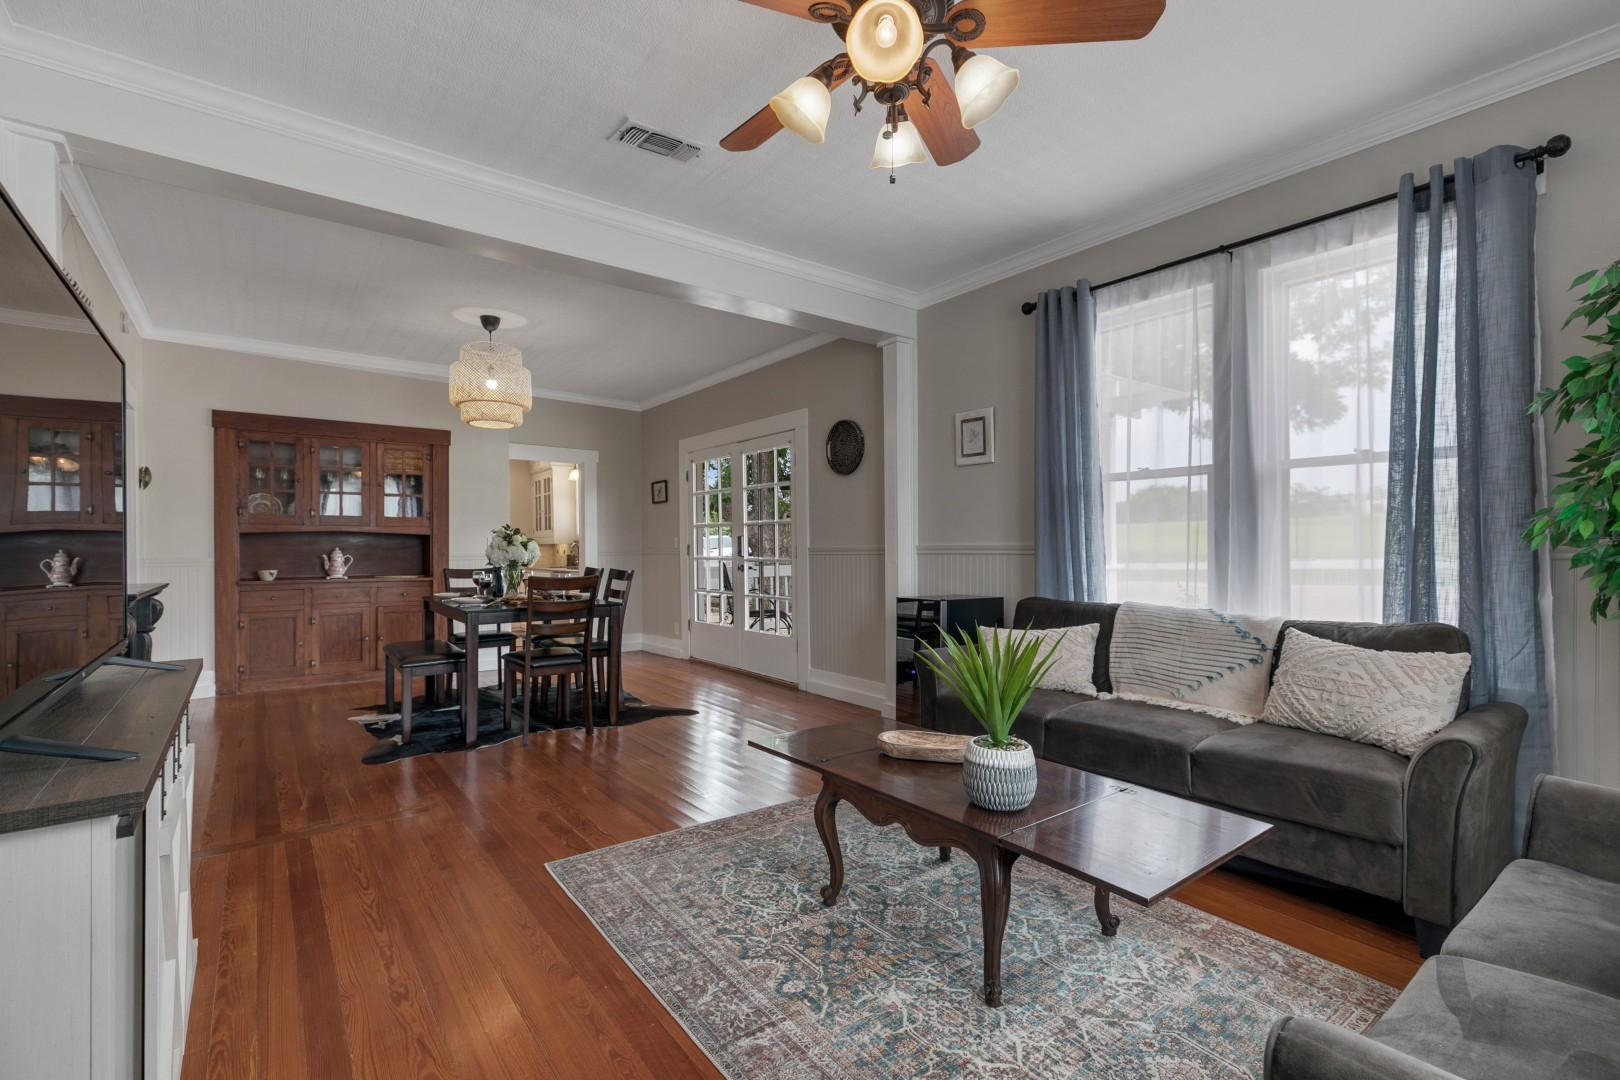 Stunning New Home with Hot Tub Just 1 Mile from Main St!